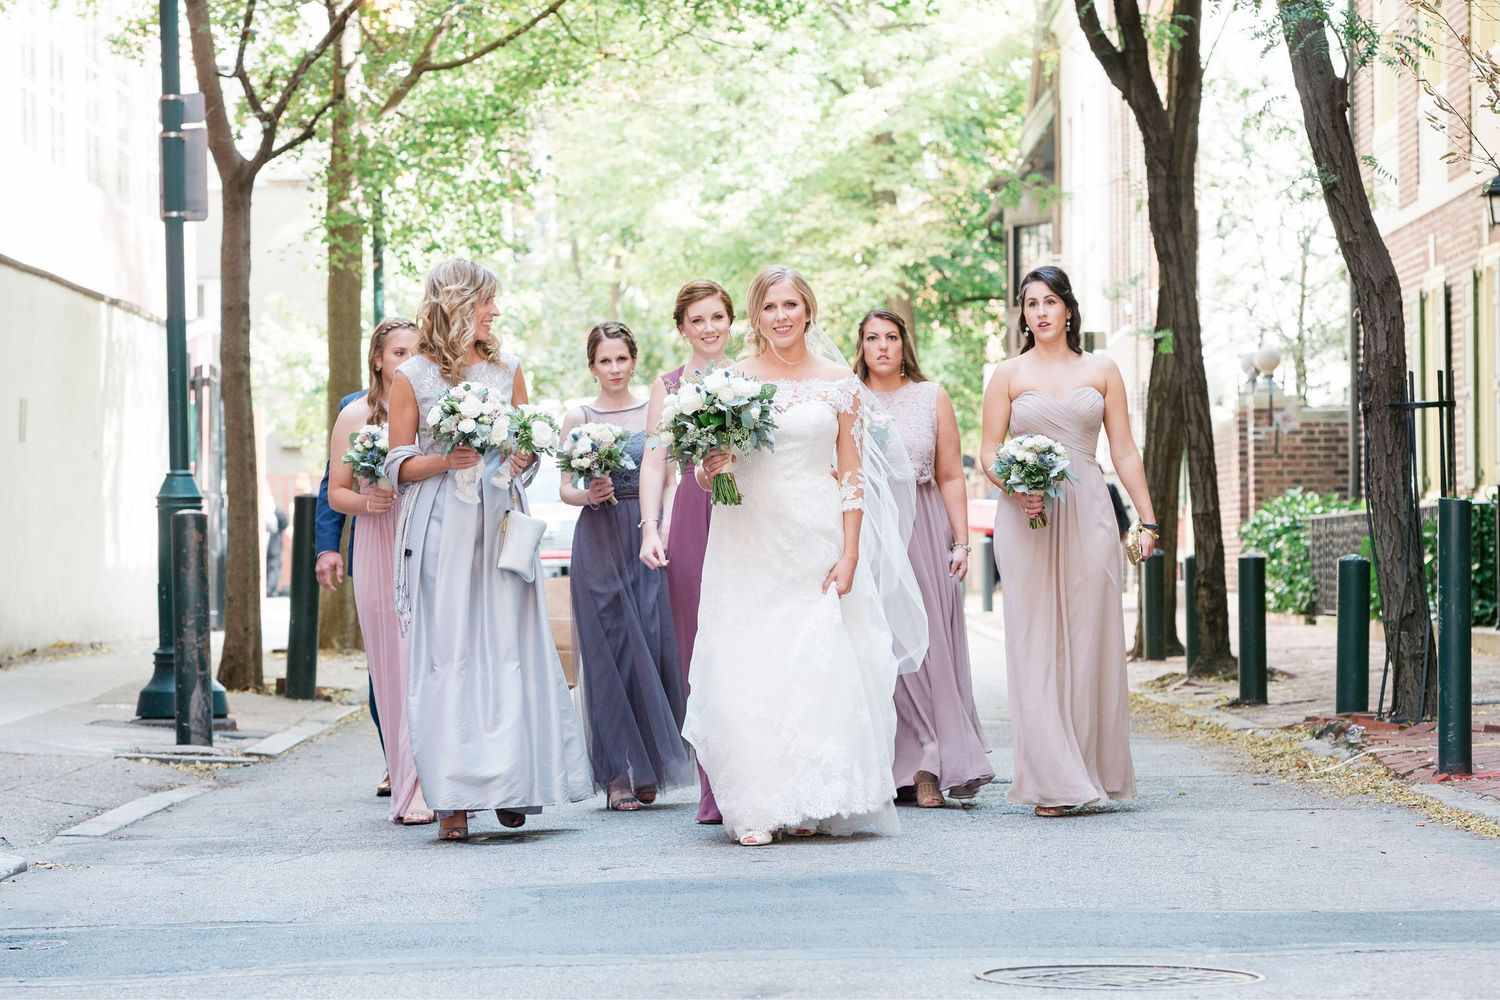 bride and bridesmaids walking in the street on way to the church